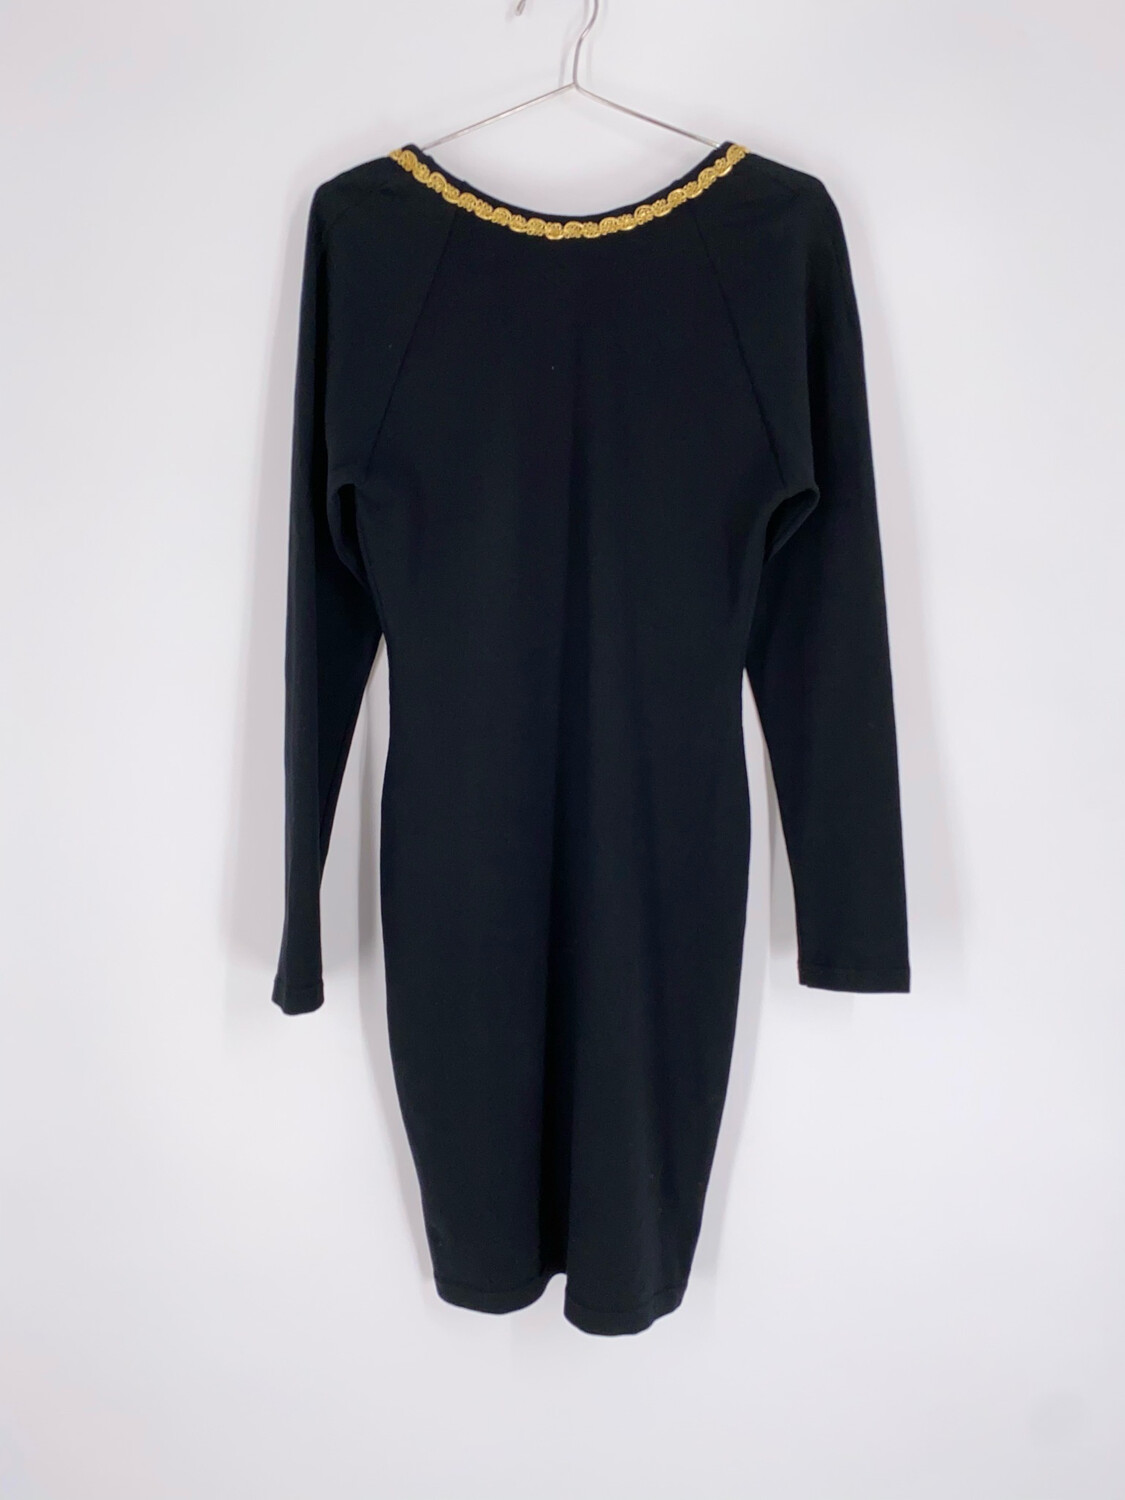 Yes Clothing Co. Black Mini Dress With Gold Trim Size S